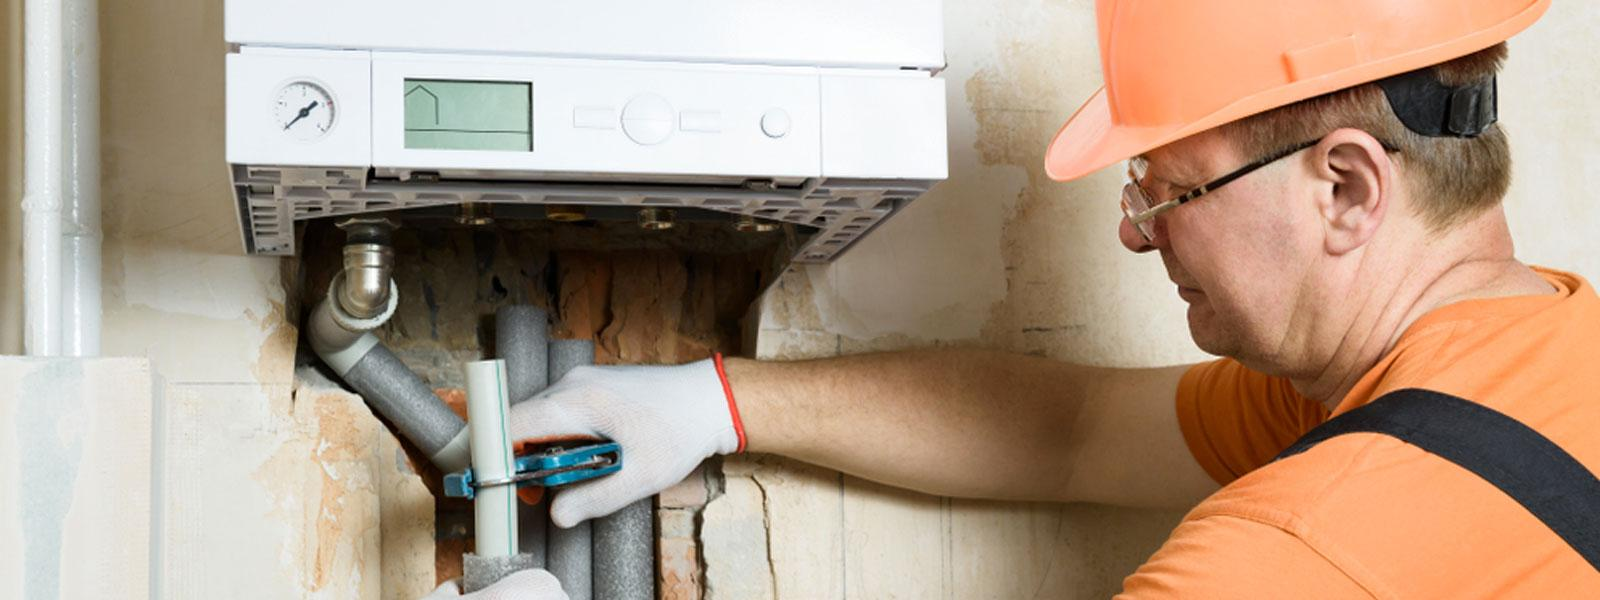 Plumber fixing boiler - Key signs your home utilities systems are on the way out